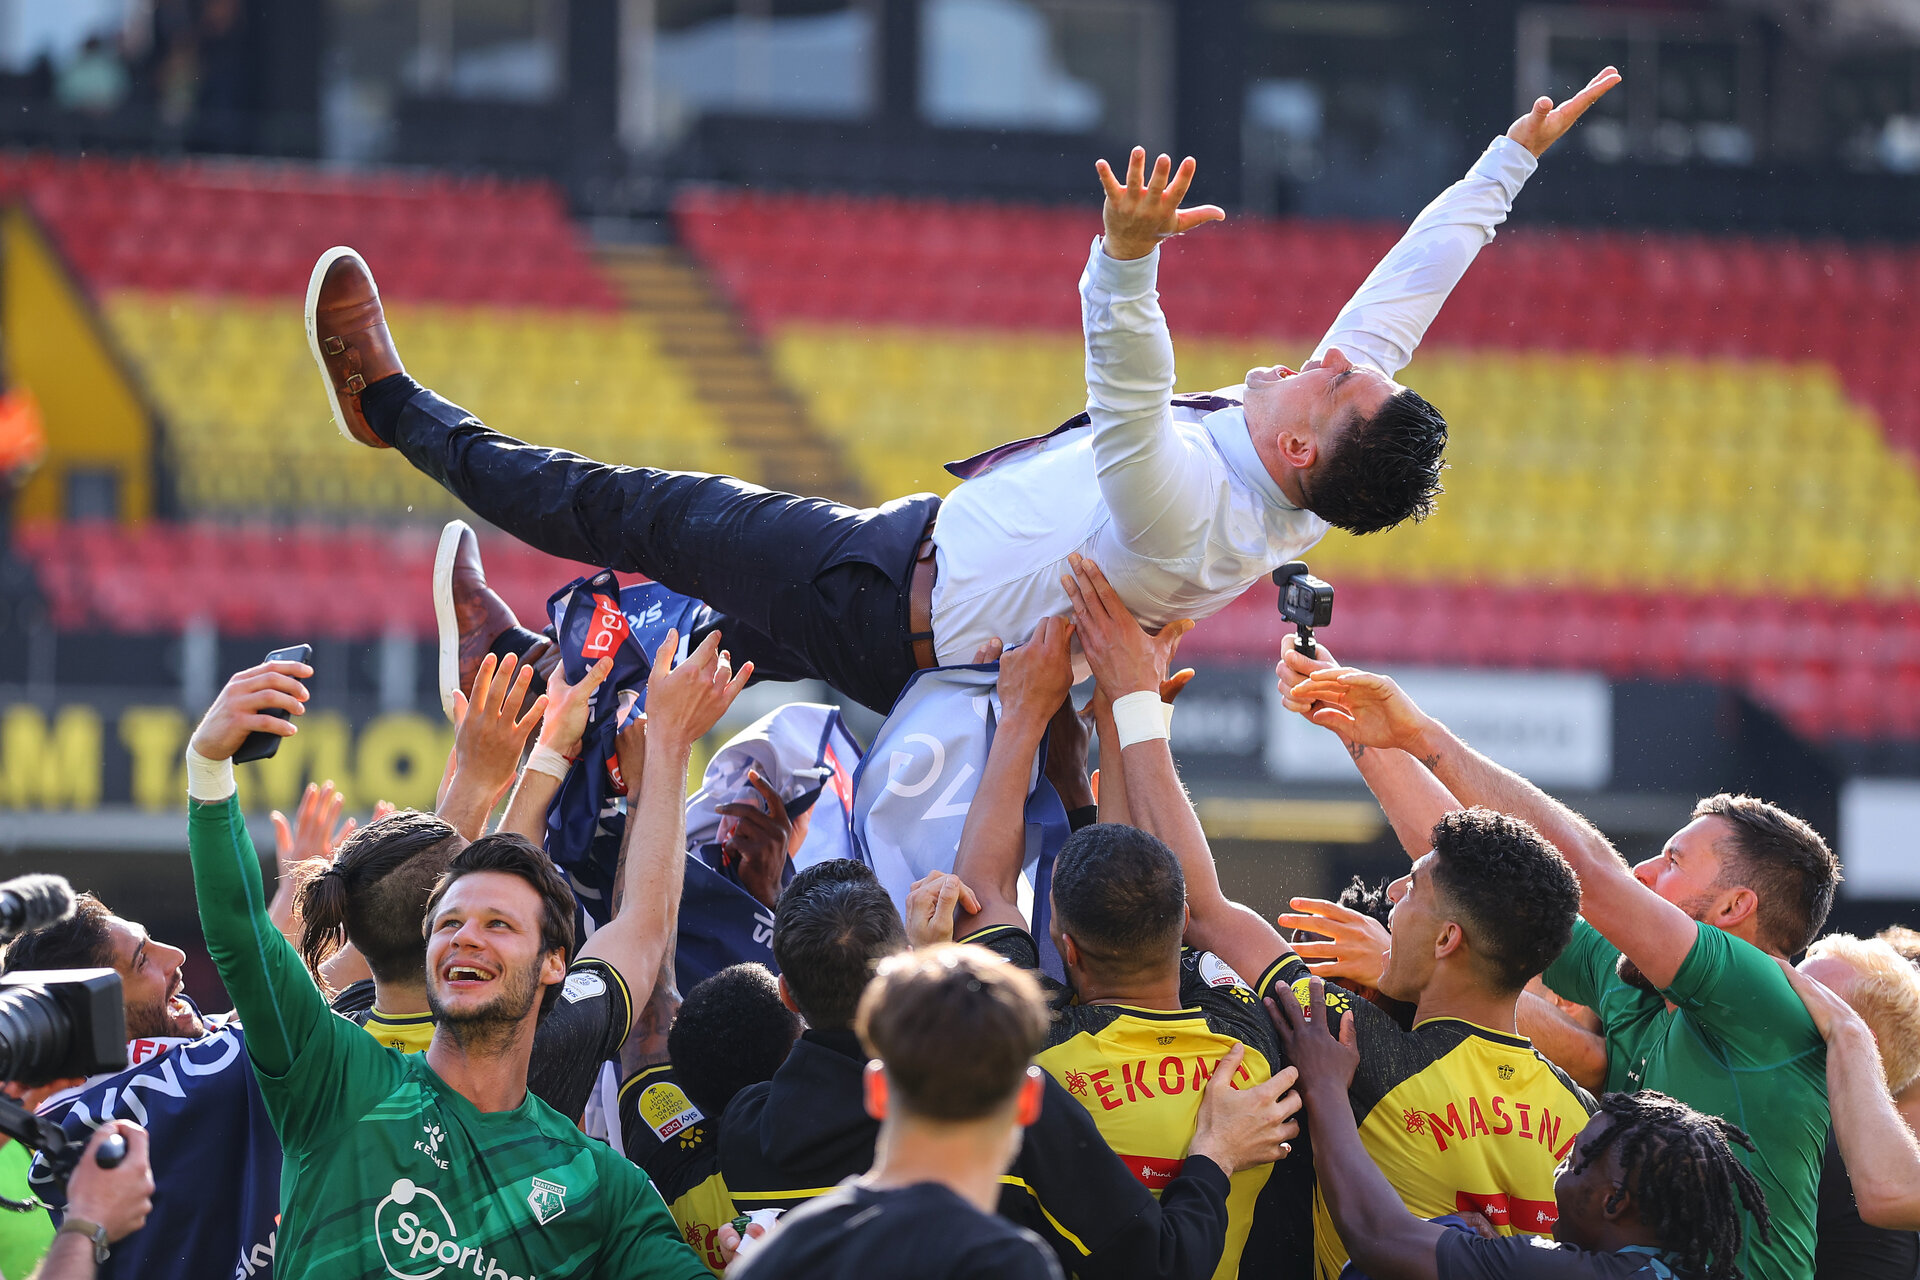 WATFORD, ENGLAND - APRIL 24: Xisco Munoz, Head Coach of Watford is thrown into the air by Players of Watford as their side are Promoted to the Premier Leagueduring the Sky Bet Championship match between Watford and Millwall at Vicarage Road on April 24, 2021 in Watford, England. Sporting stadiums around the UK remain under strict restrictions due to the Coronavirus Pandemic as Government social distancing laws prohibit fans inside venues resulting in games being played behind closed doors. (Photo by Richard Heathcote/Getty Images)